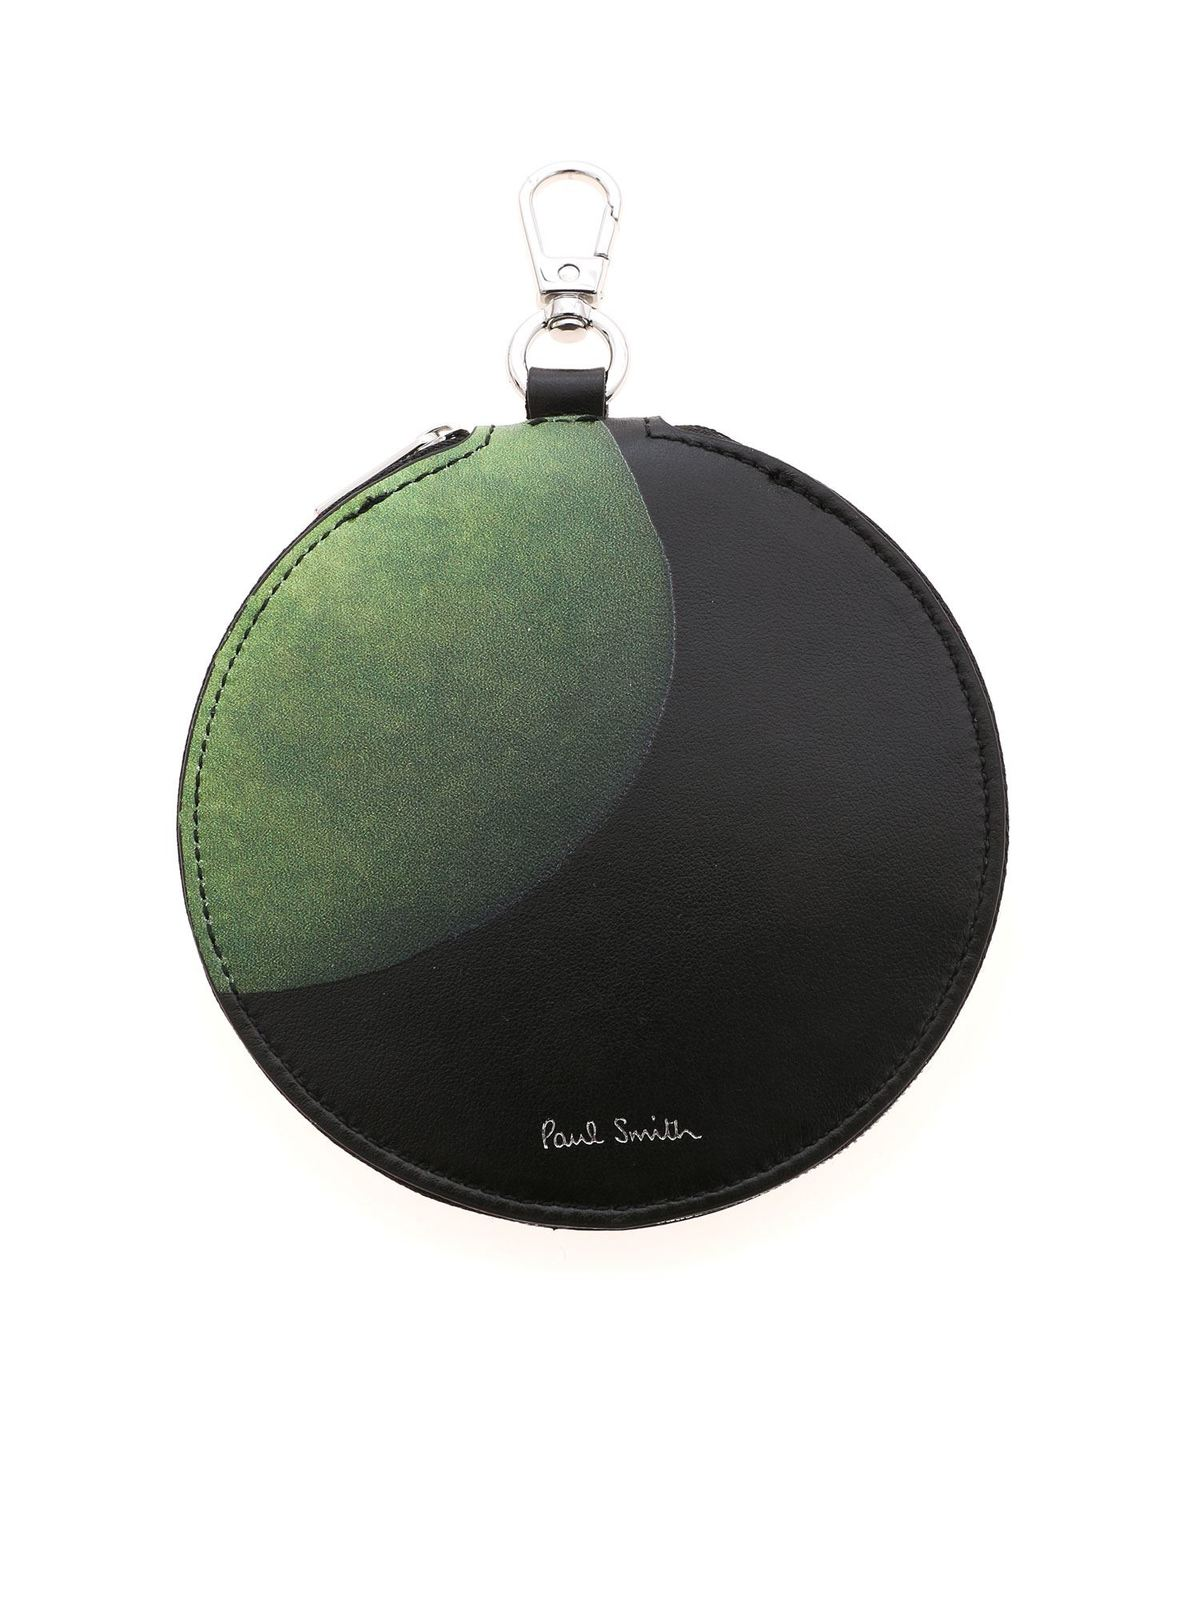 Paul Smith APPLE PRINT COIN PURSE IN BLACK